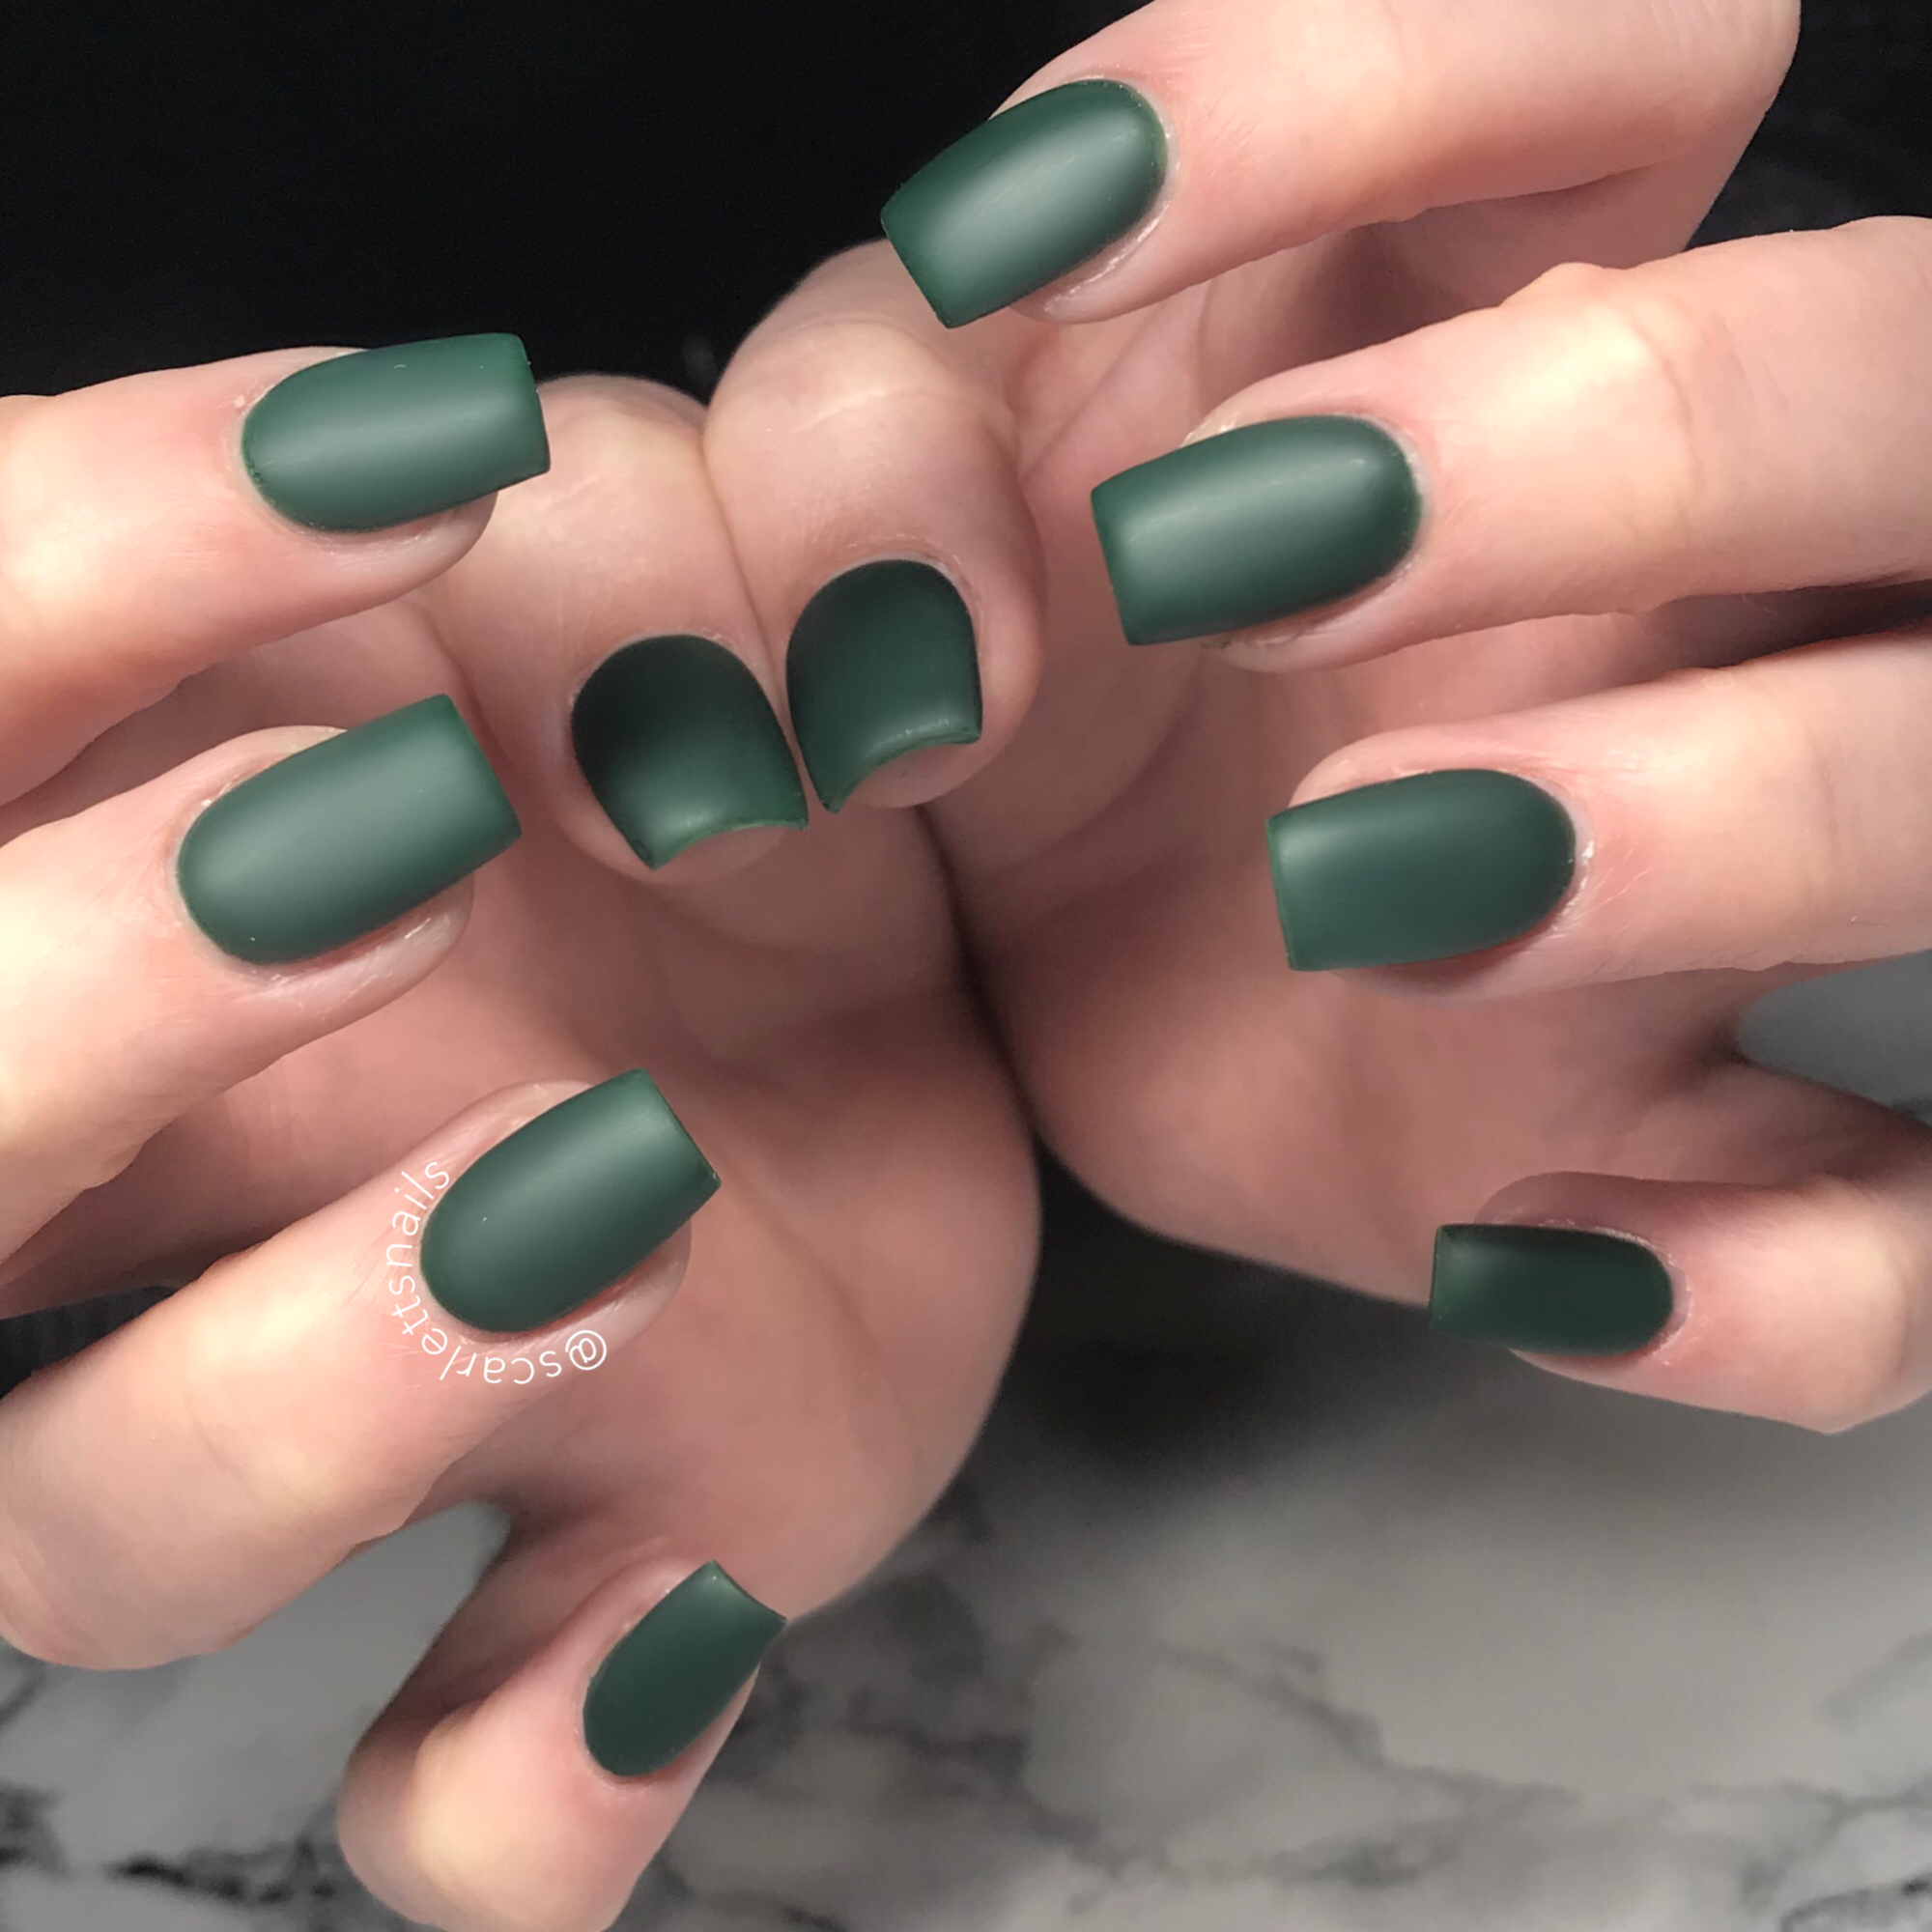 scarlettsnails matte army camouflage green gel nails | Nails ...